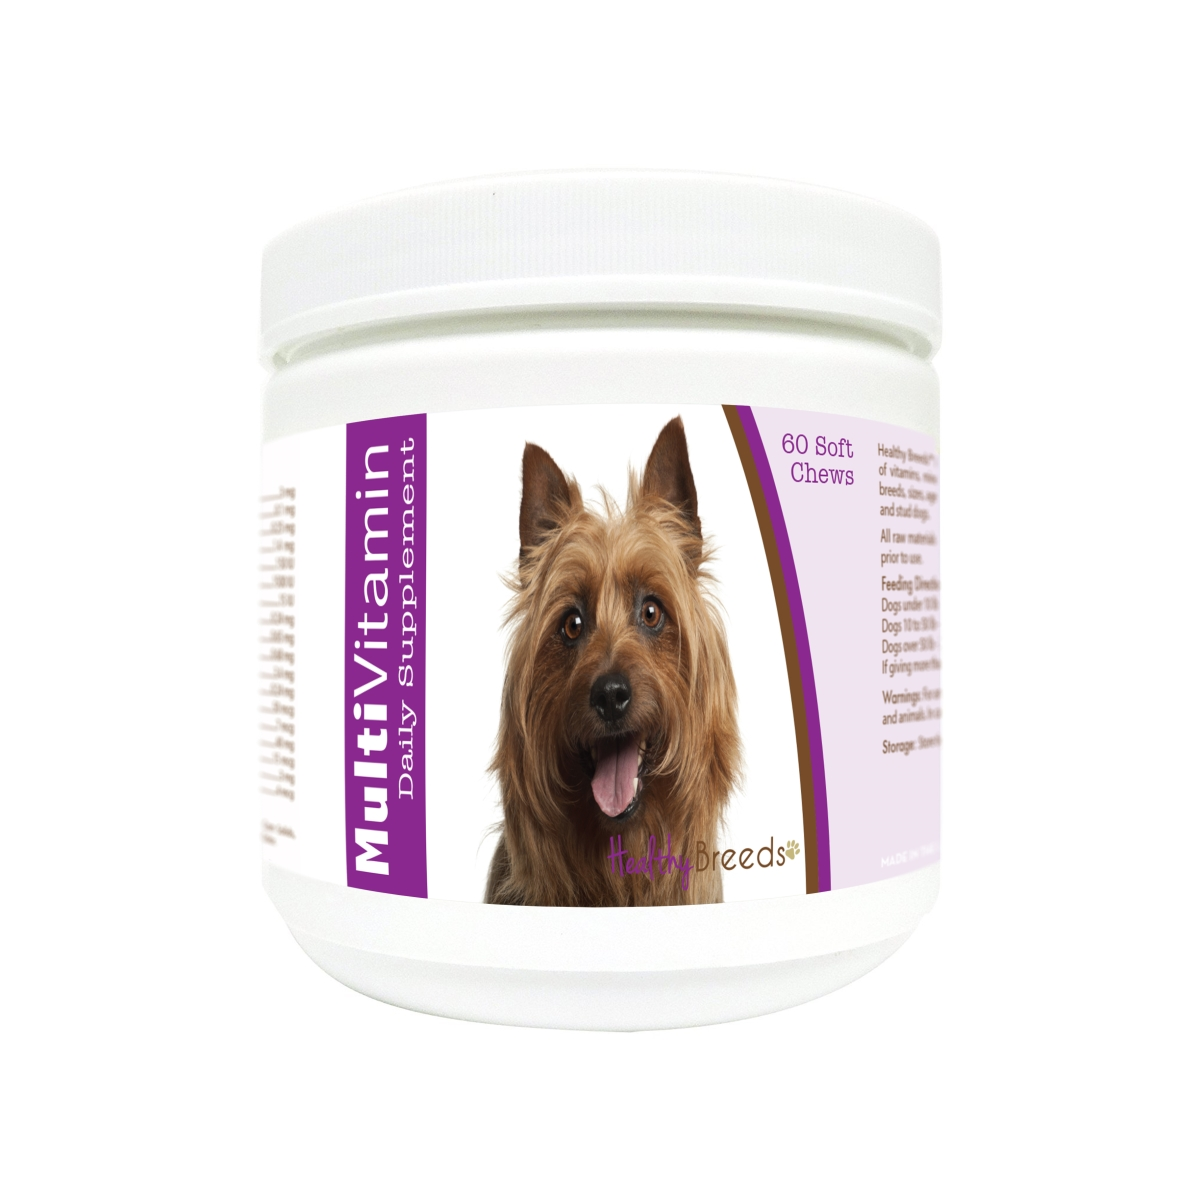 Healthy Breeds 840235179009 Australian Terrier Multi-Vitamin Soft Chews - 60 Count